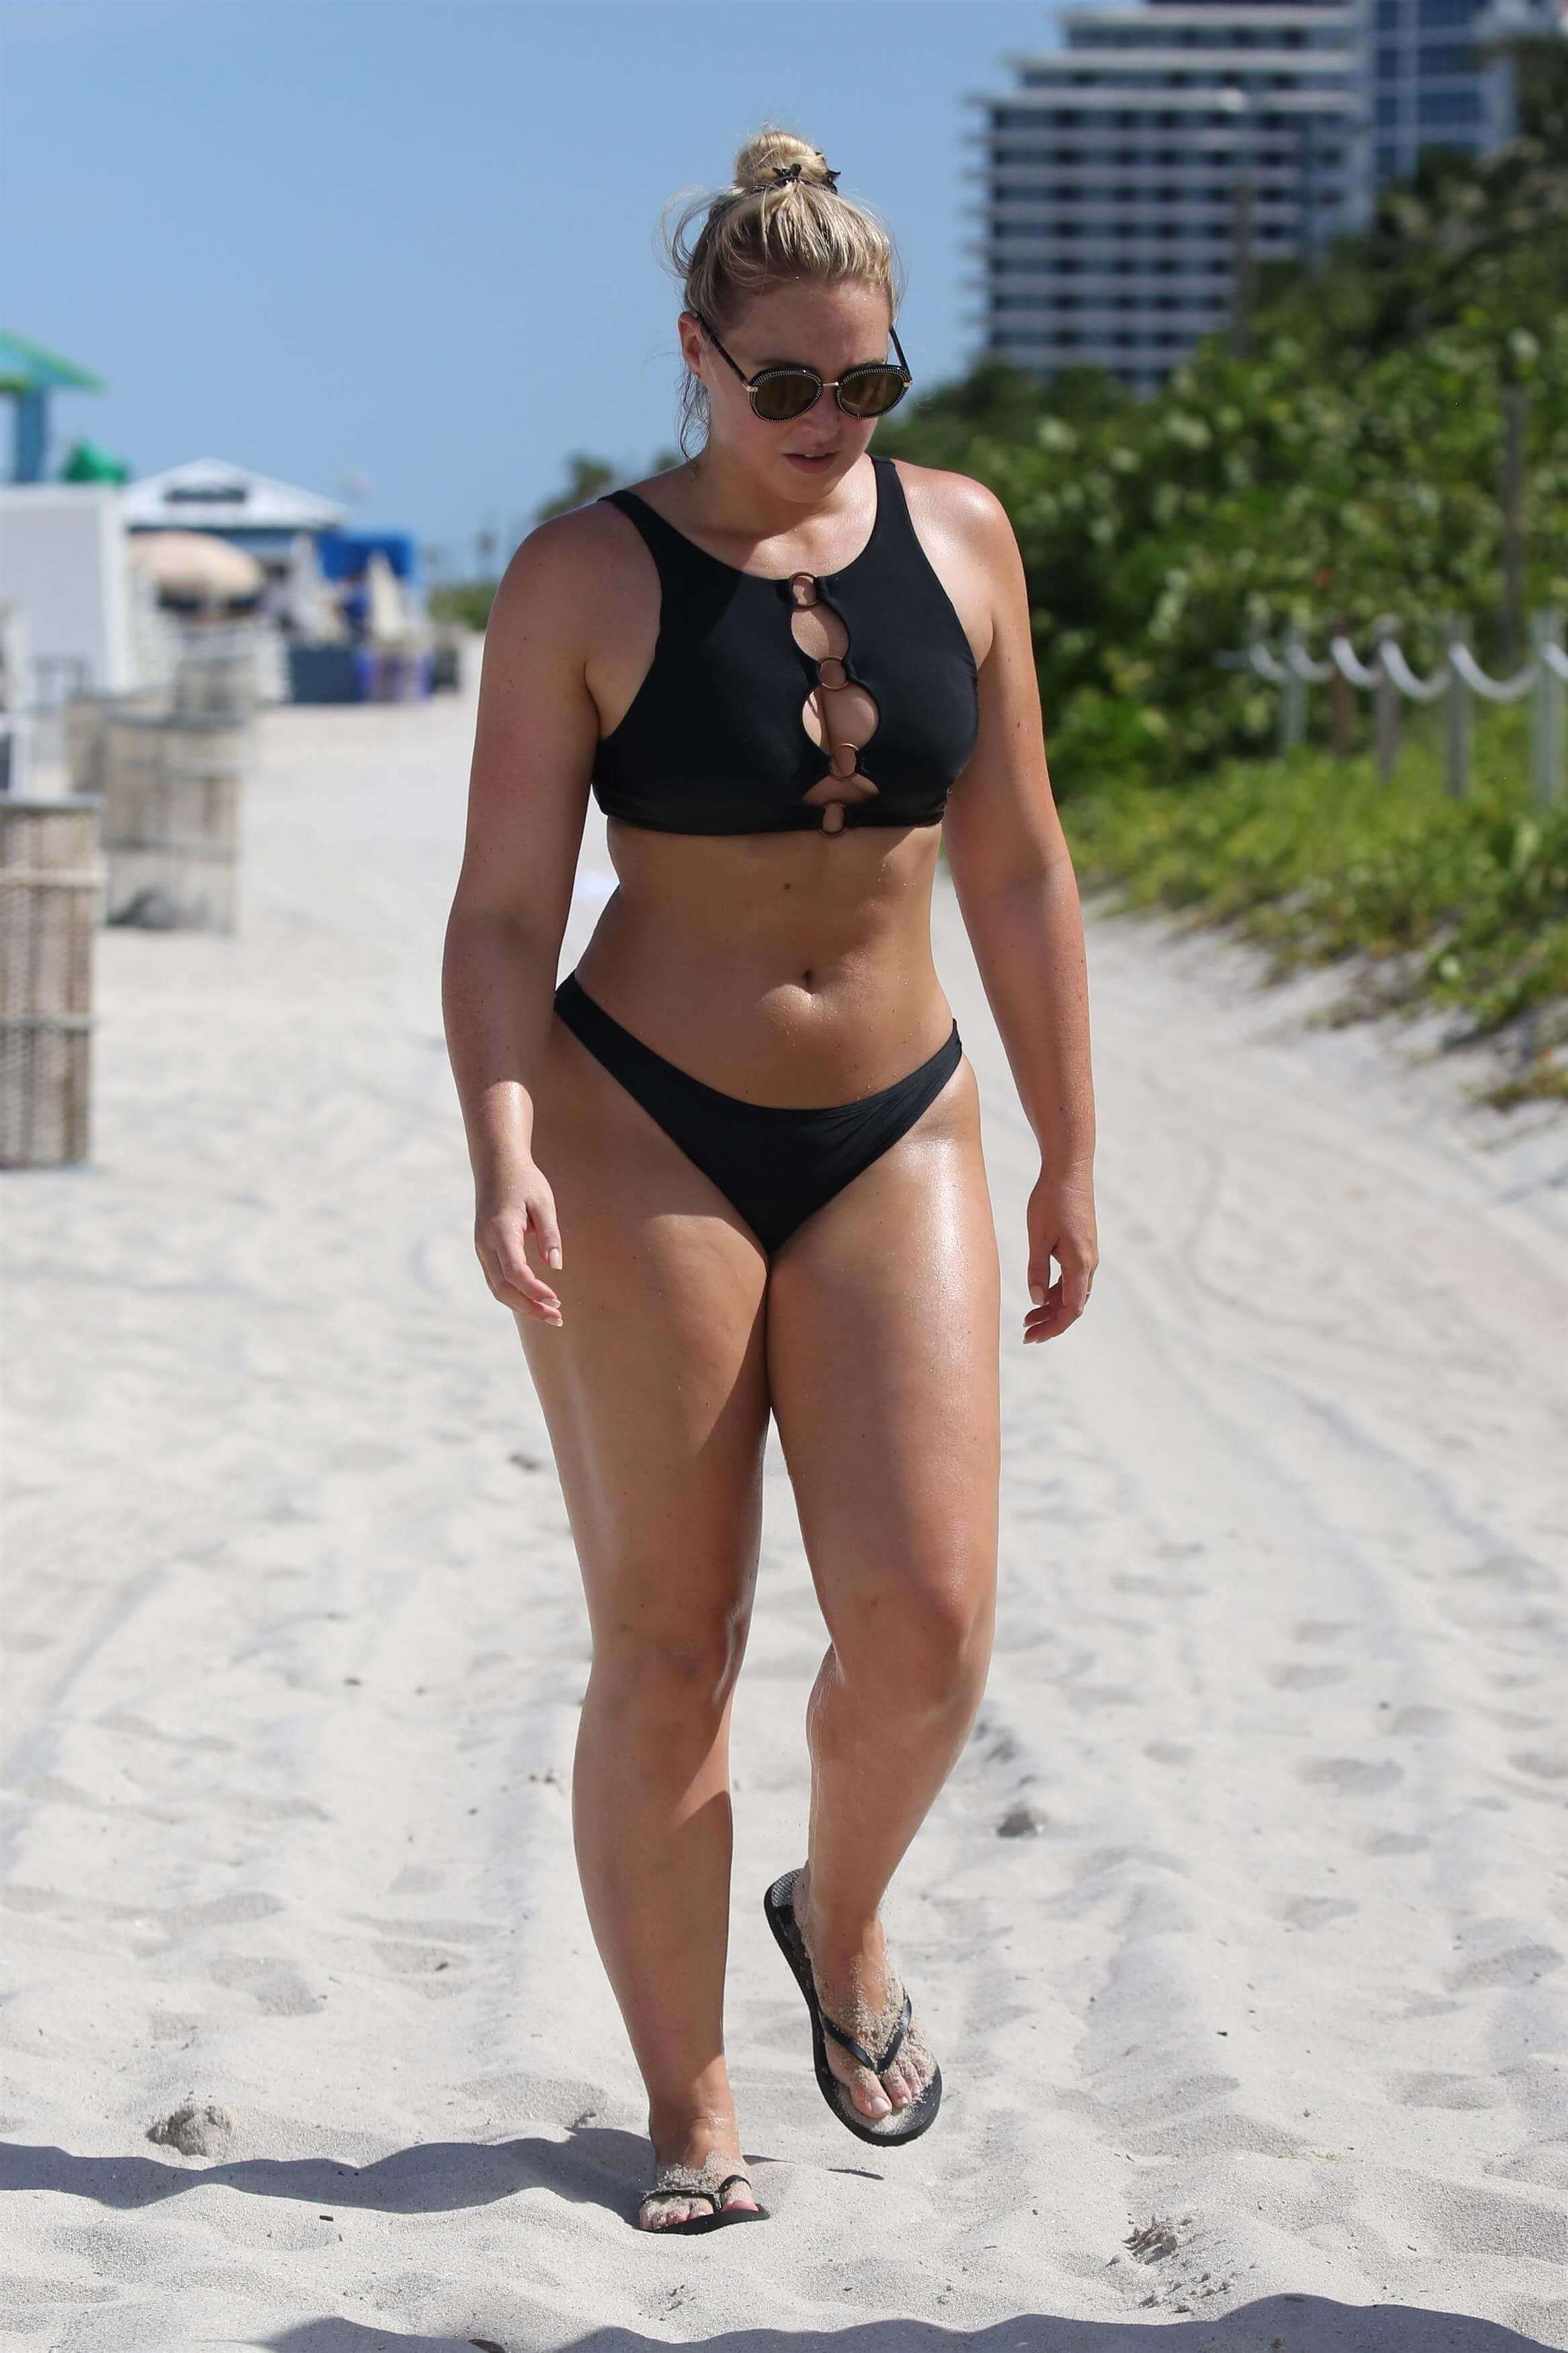 Iskra lawrence hot look pic